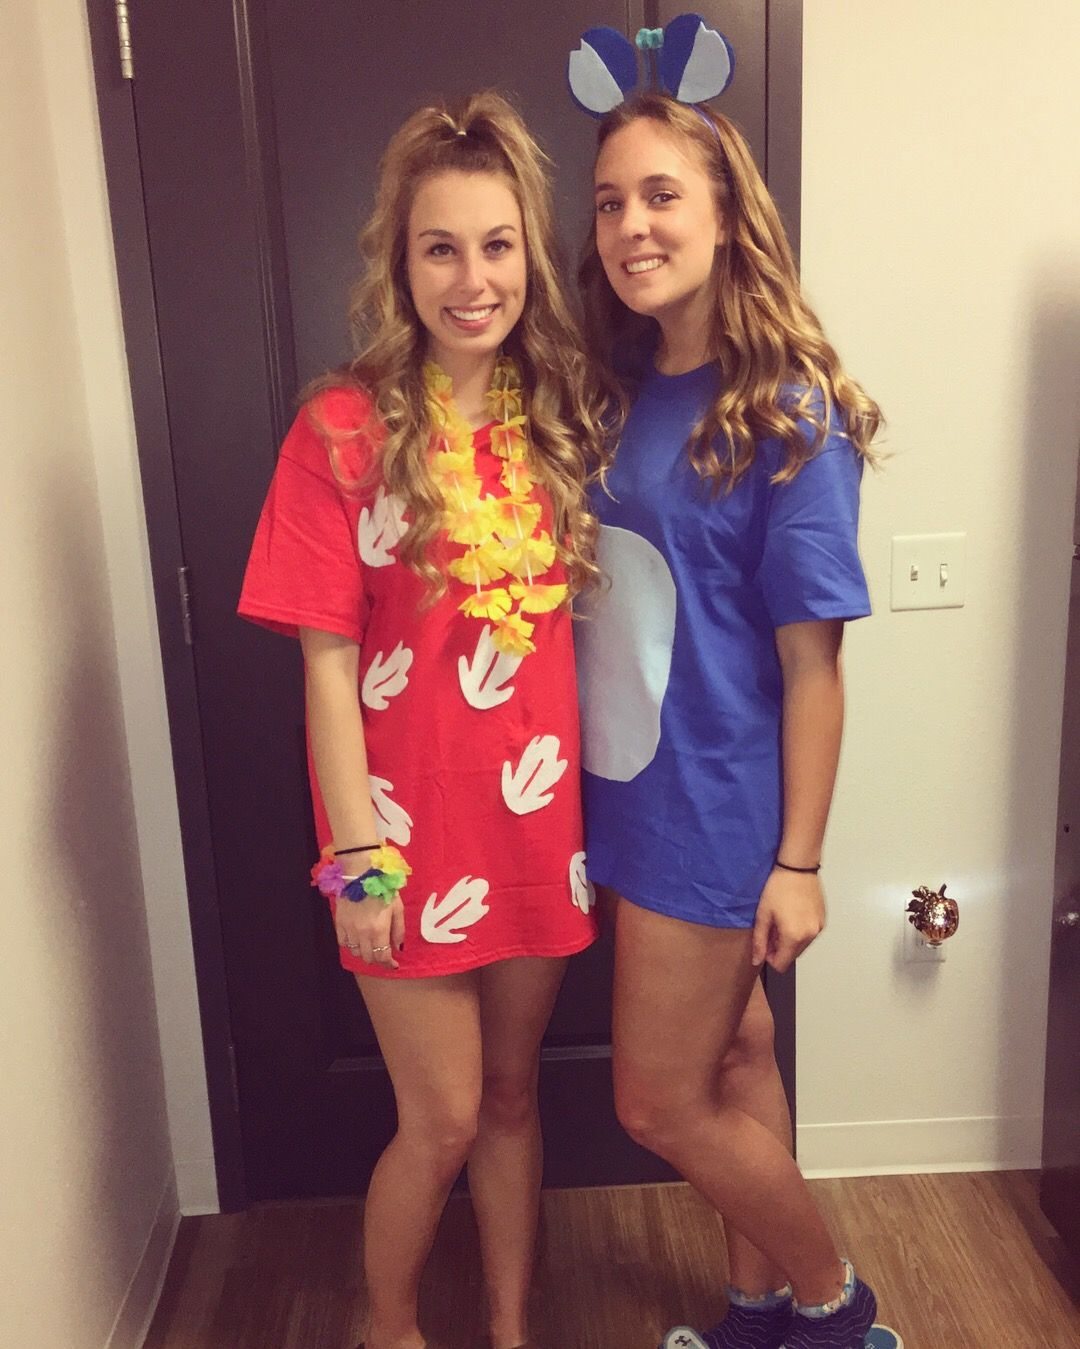 Lilo And Stitch Halloween Costumes Friends Duo Halloween Costumes Stitch Halloween Costume